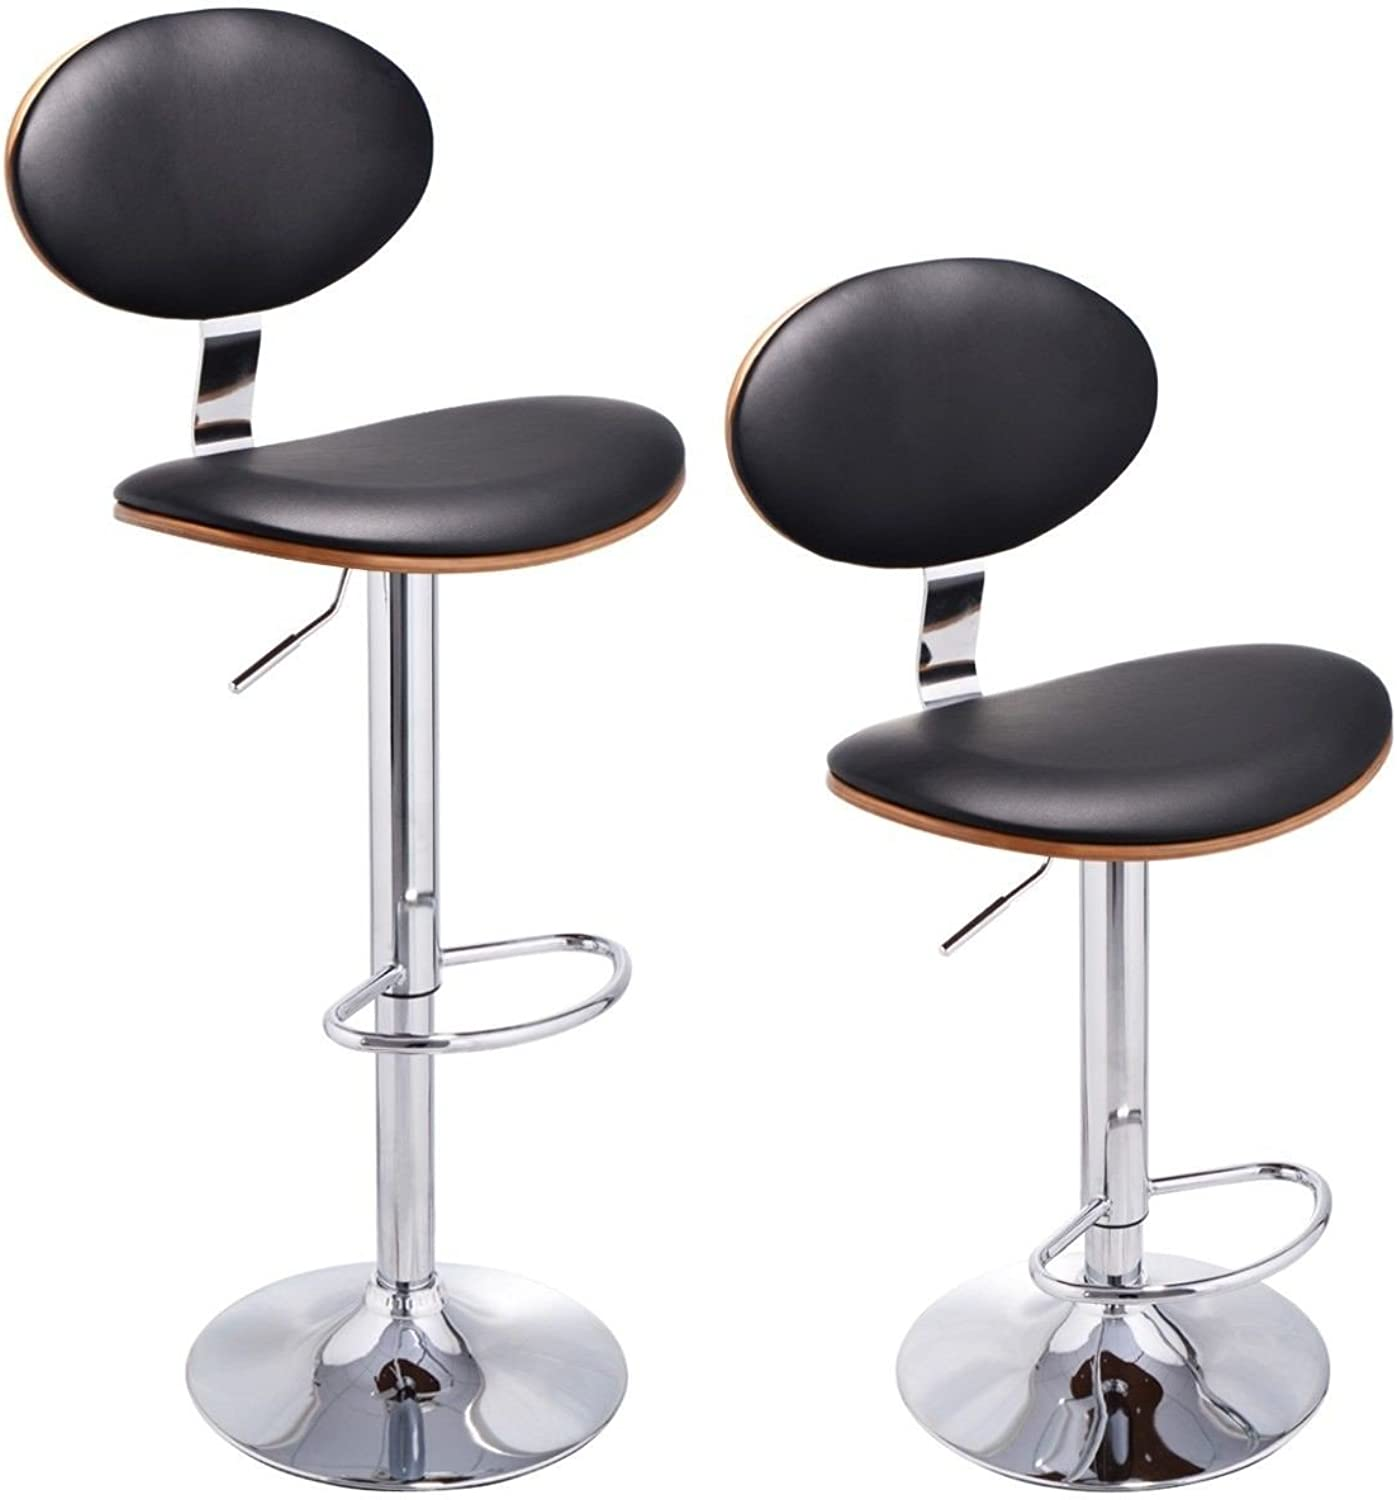 Imtinanz Set of 2 Modern Bentwood Swivel Bar Stools